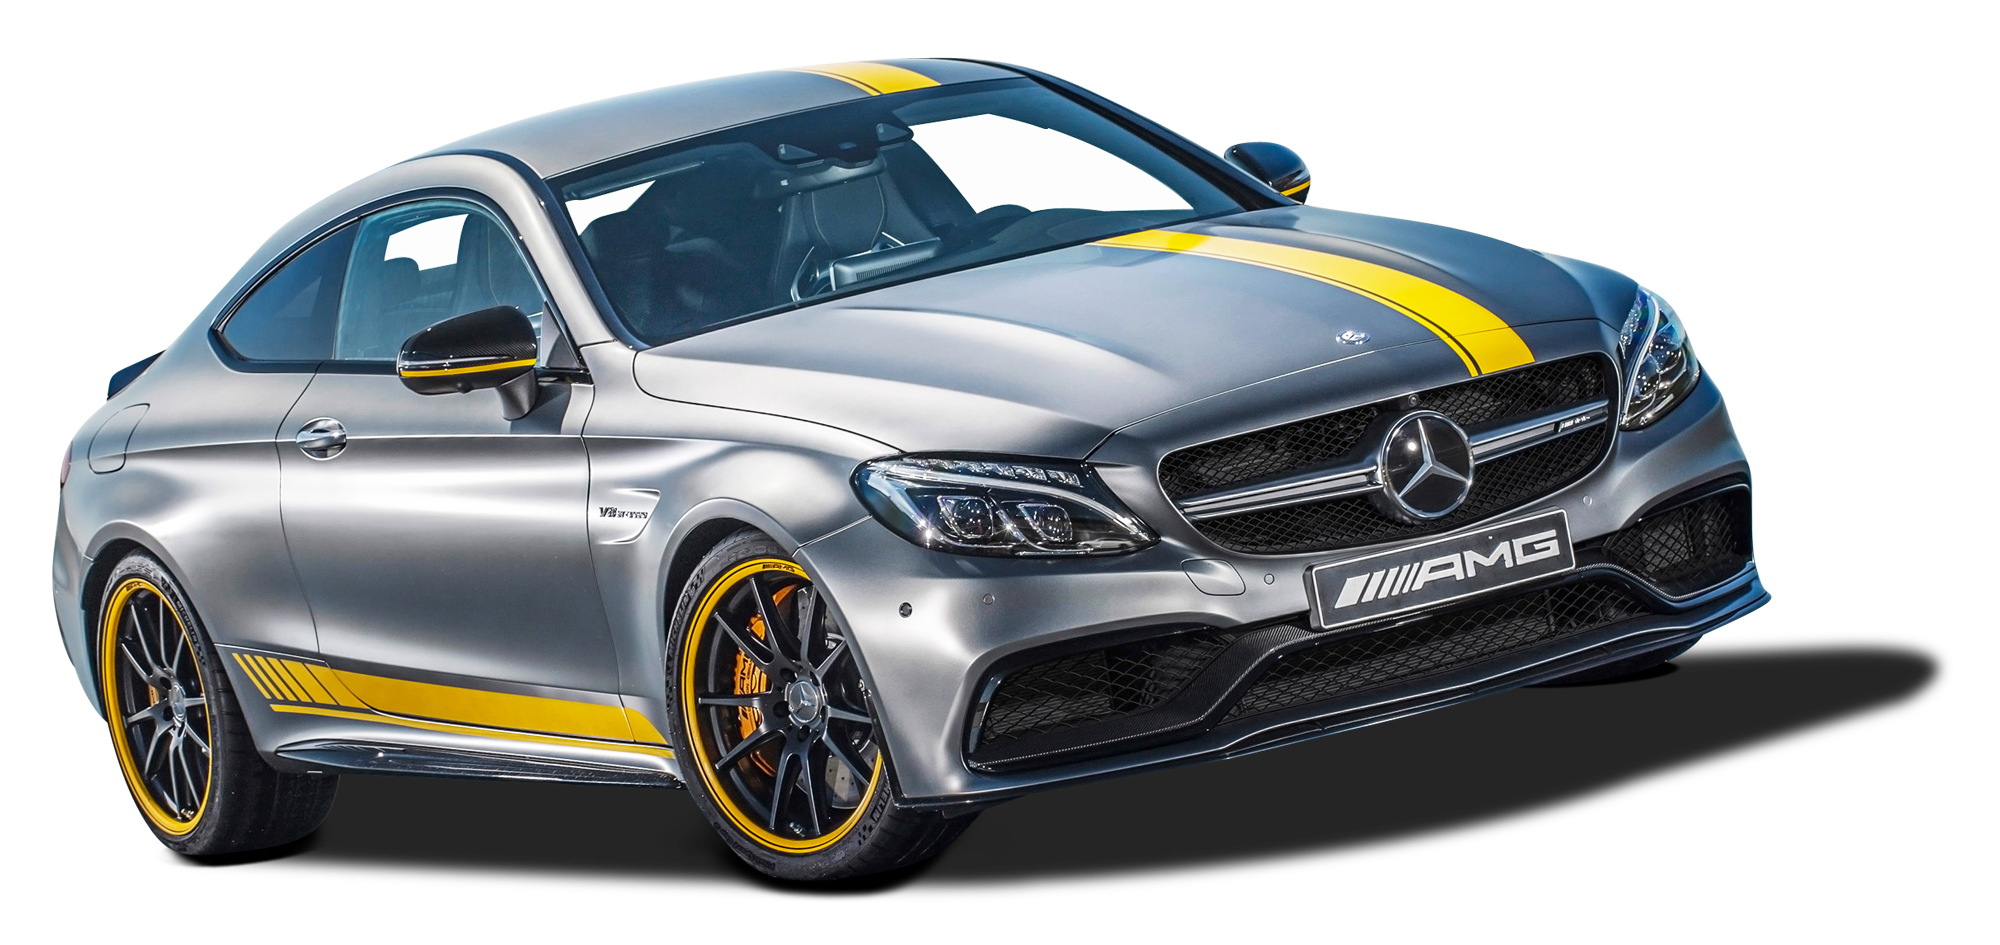 Mercedes AMG C63 Coupe Car PNG Image